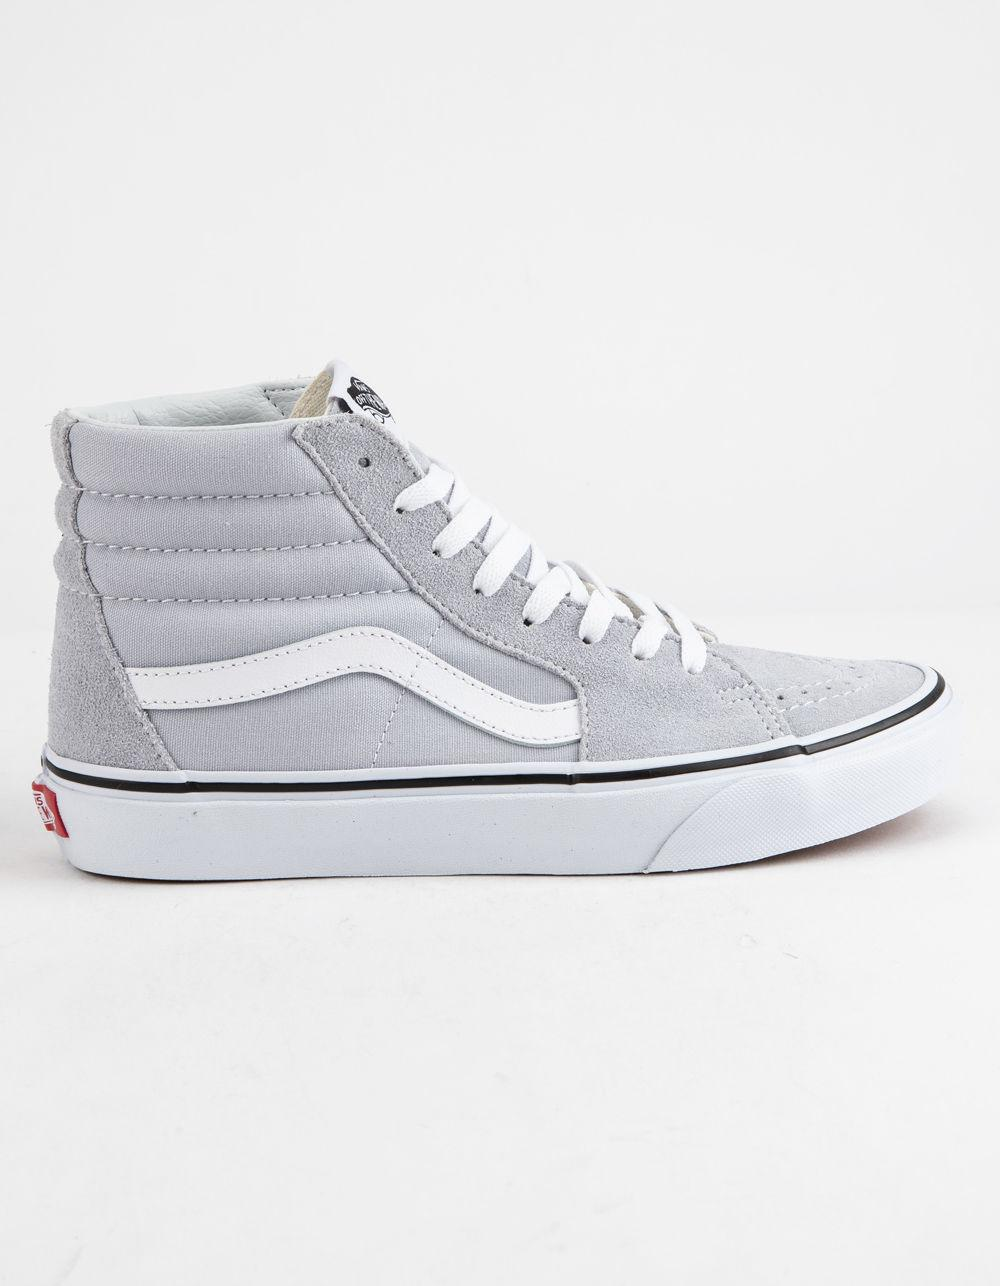 Lyst - Vans Sk8-hi Gray Dawn   True White Womens Shoes in White ff50deb4e